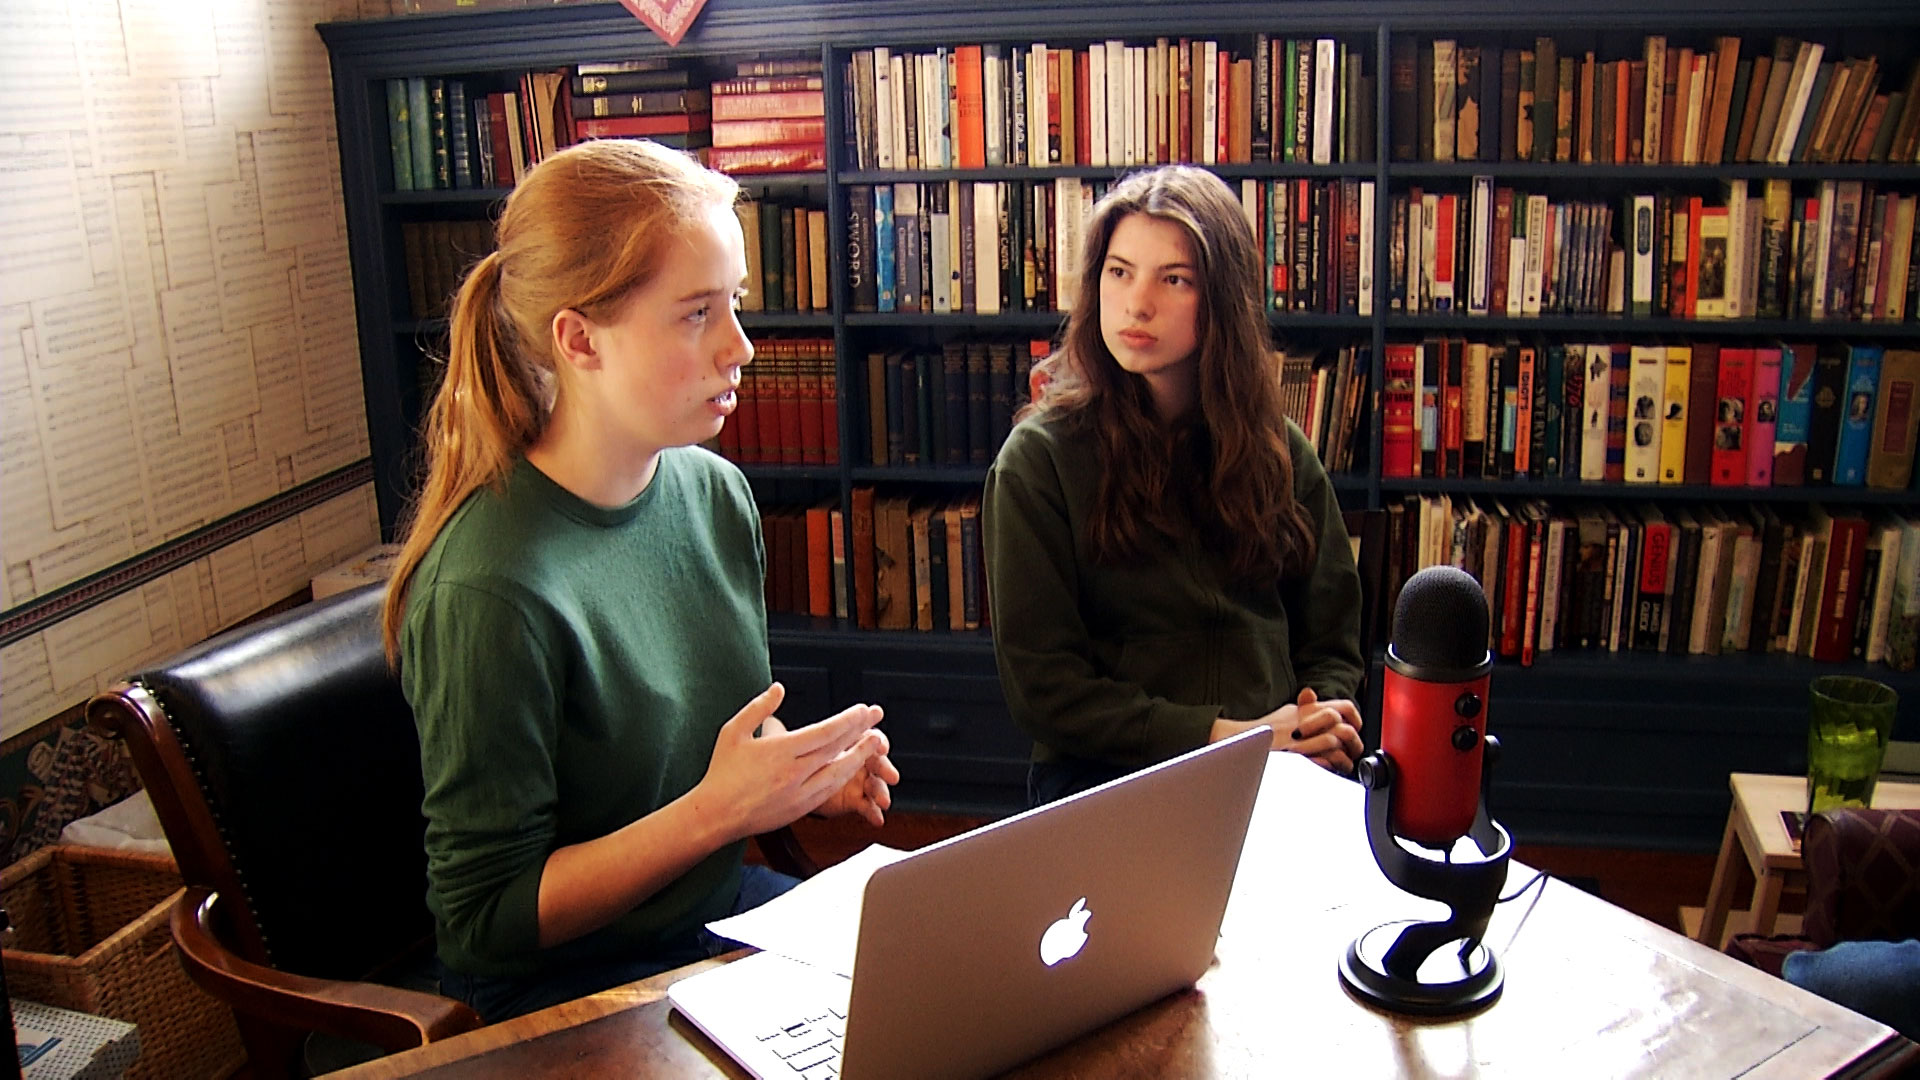 Grace Proebsting (left) and Rose Long conduct an interview for their podcast Gosh Darn Podcast at the Z Mansion in Tucson on February 26, 2019. The teens are students at University High School and developed the podcast for their Varsity Economics club.